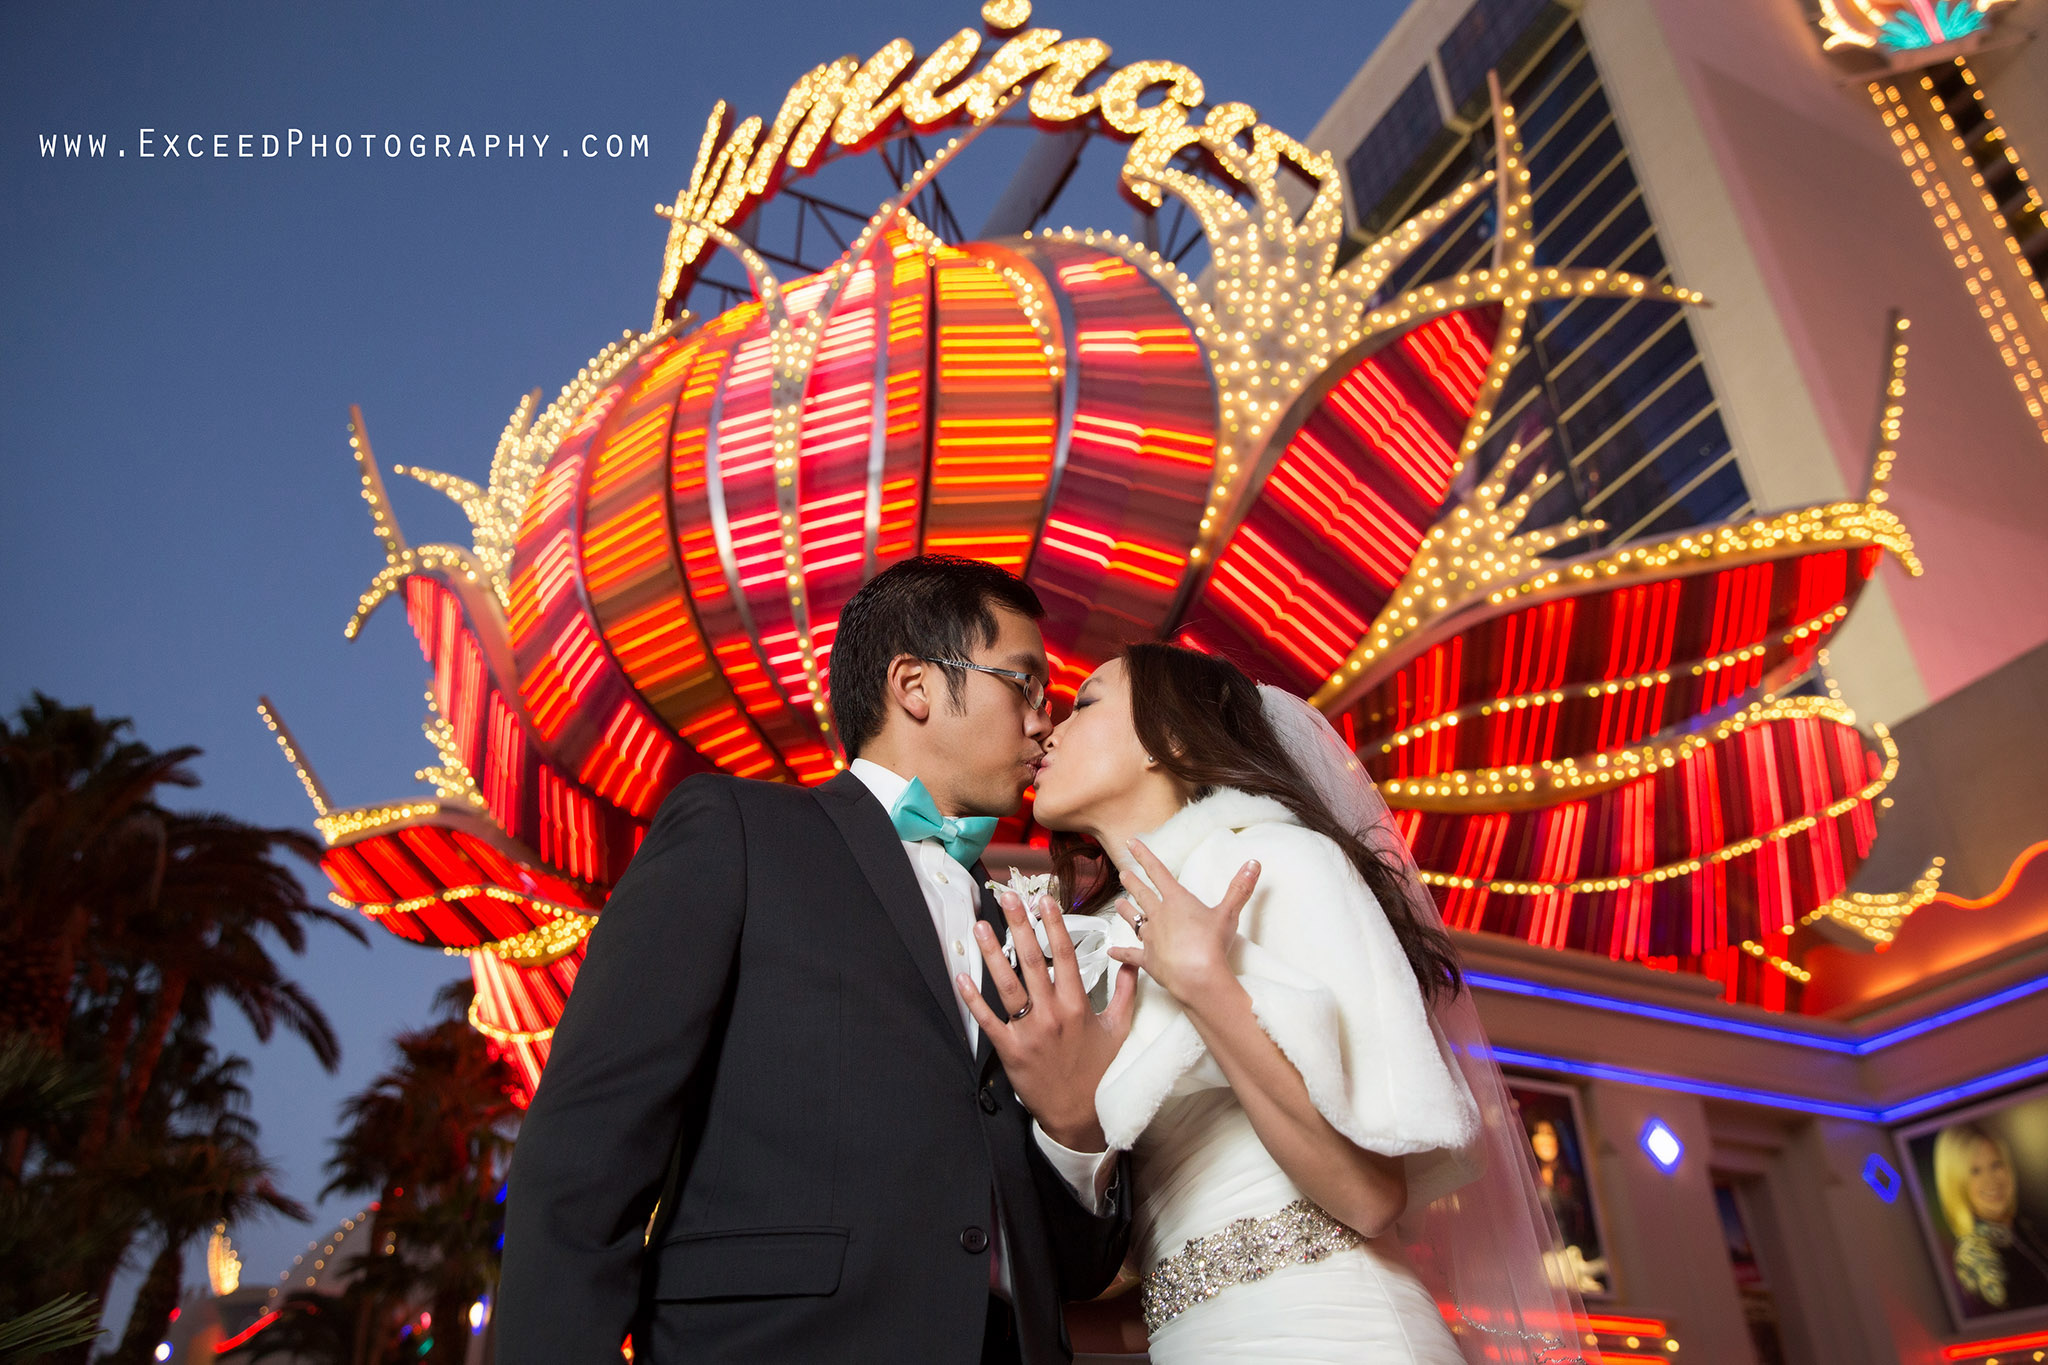 Flamingo Wedding Ceremony And The Reception At The